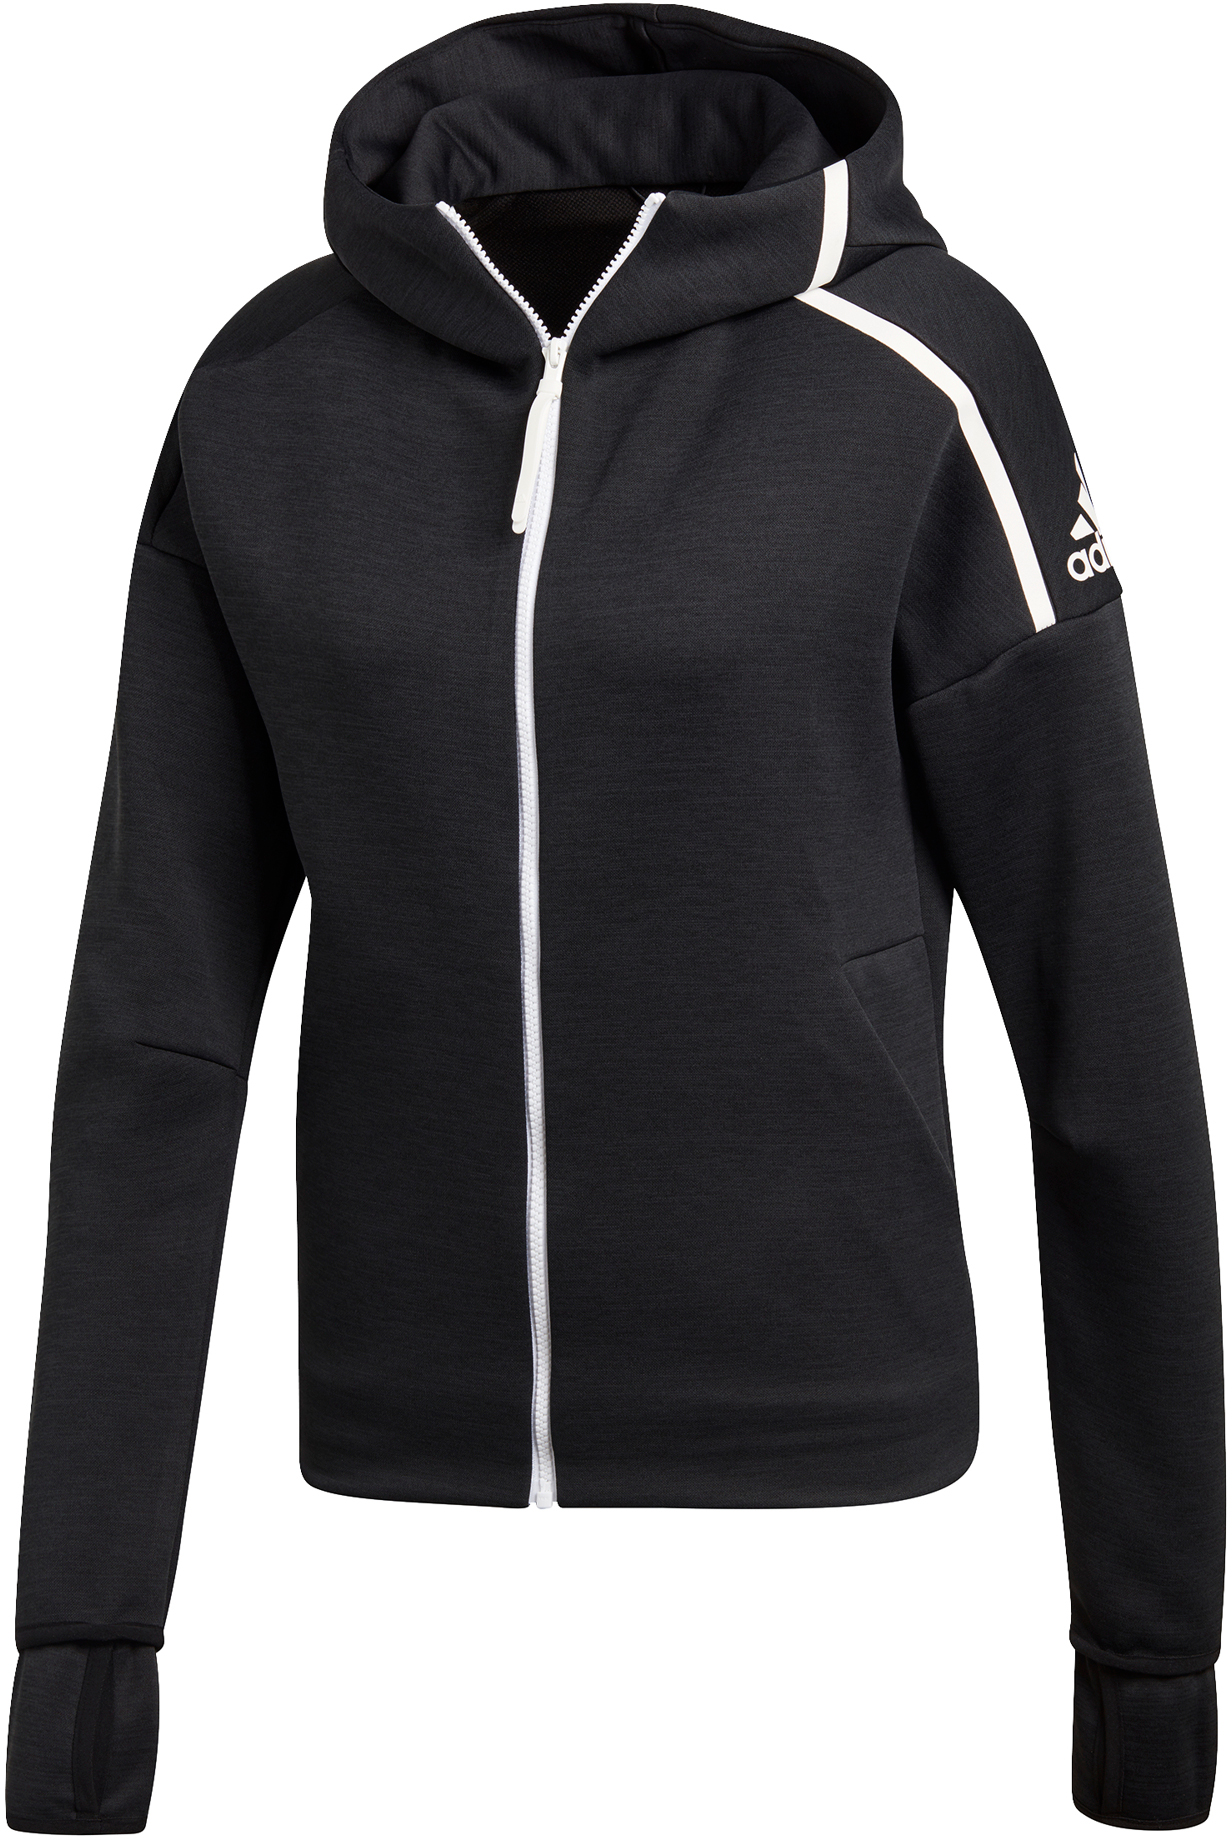 adidas hoodie with zipper